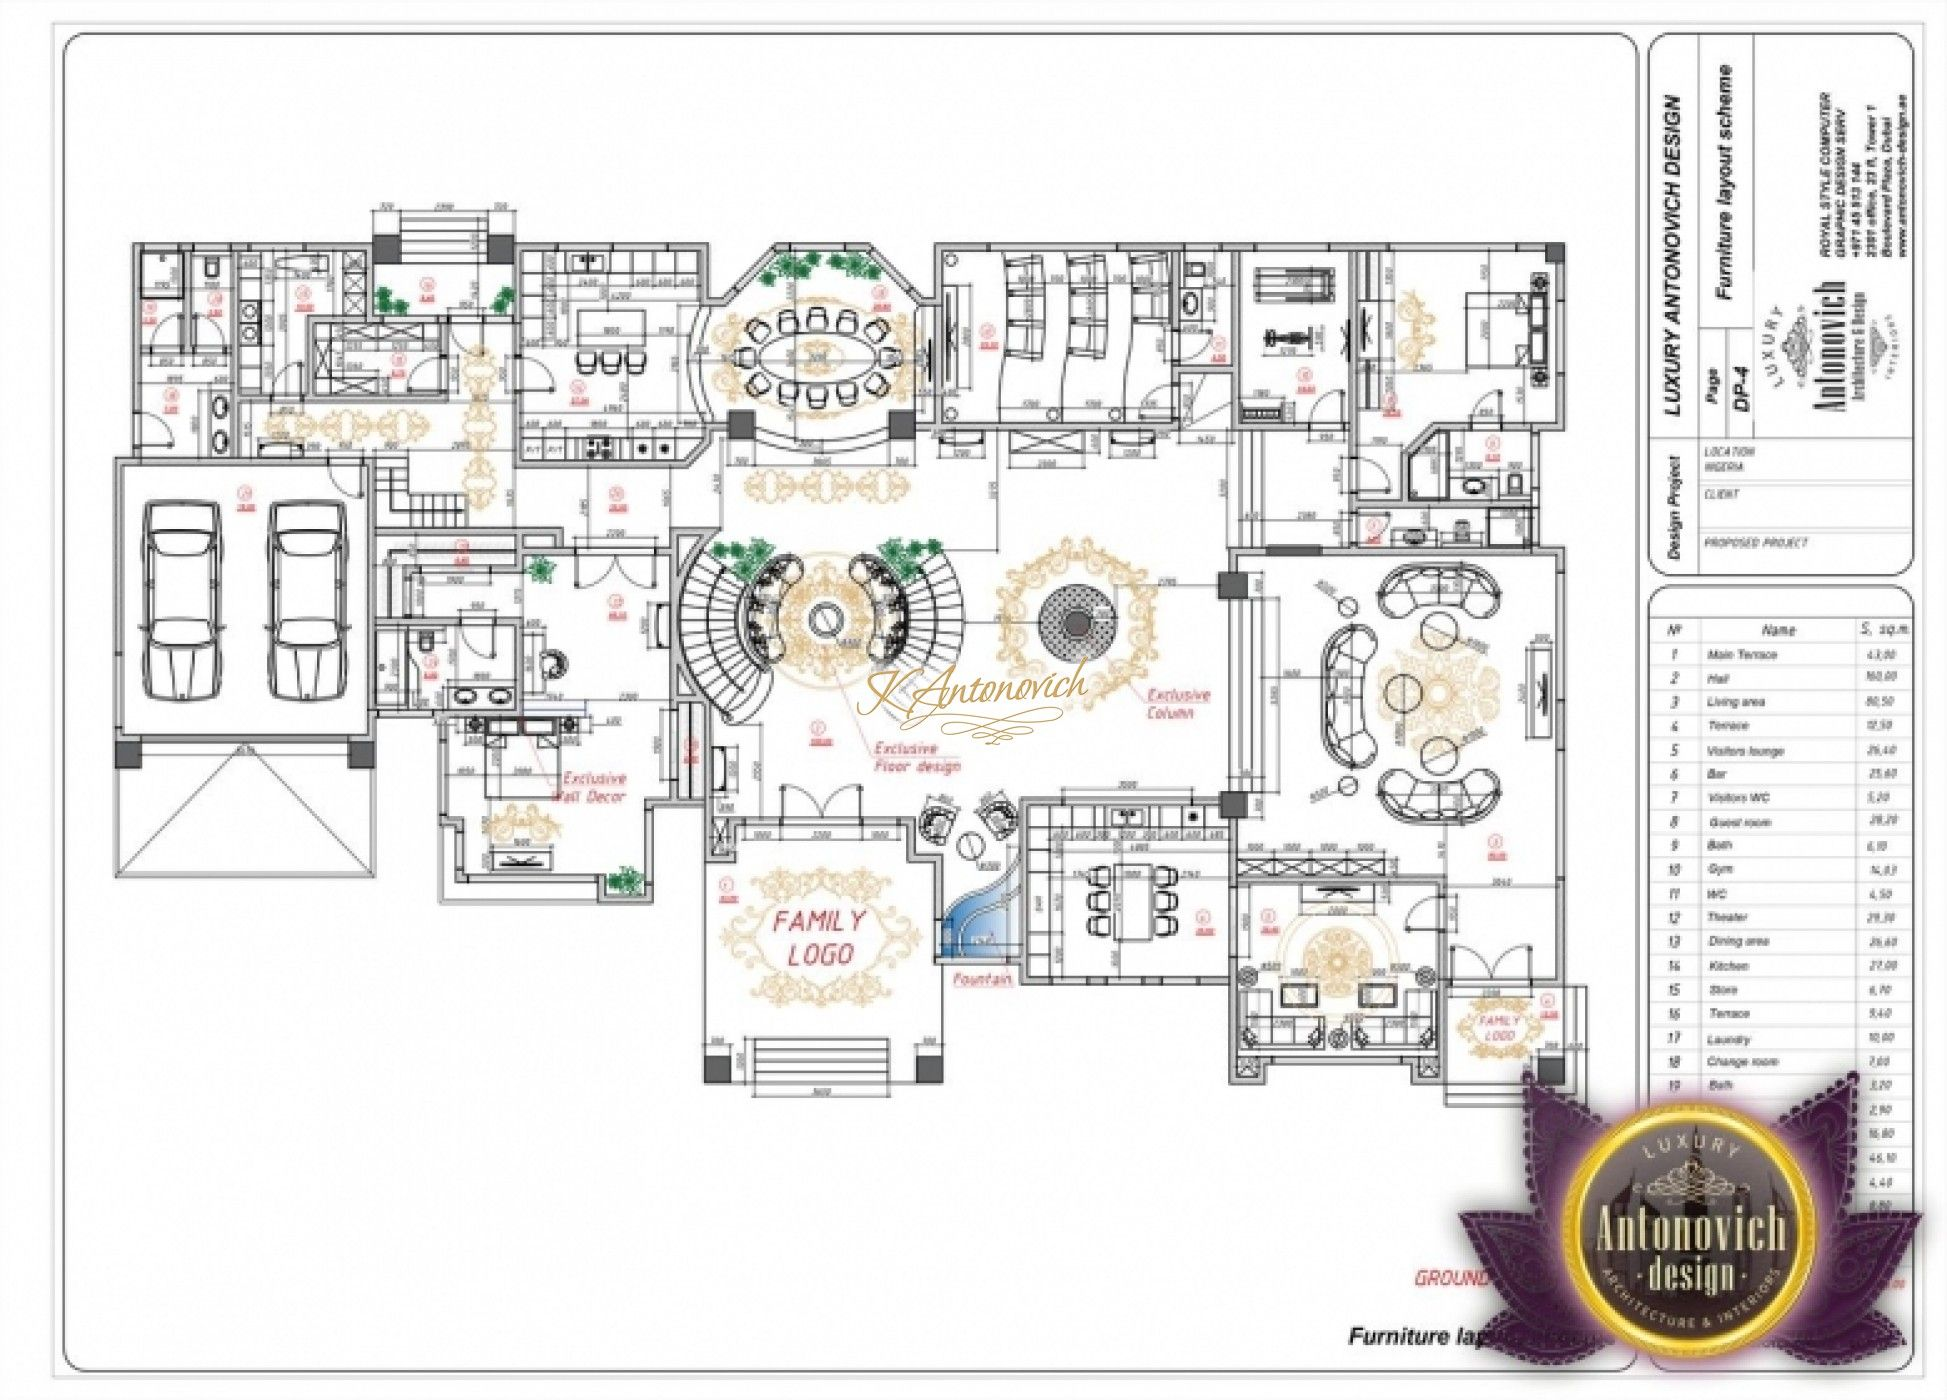 Luxury House Plan Nigeria Luxury House Plans Luxury House Designs Luxury Floor Plans